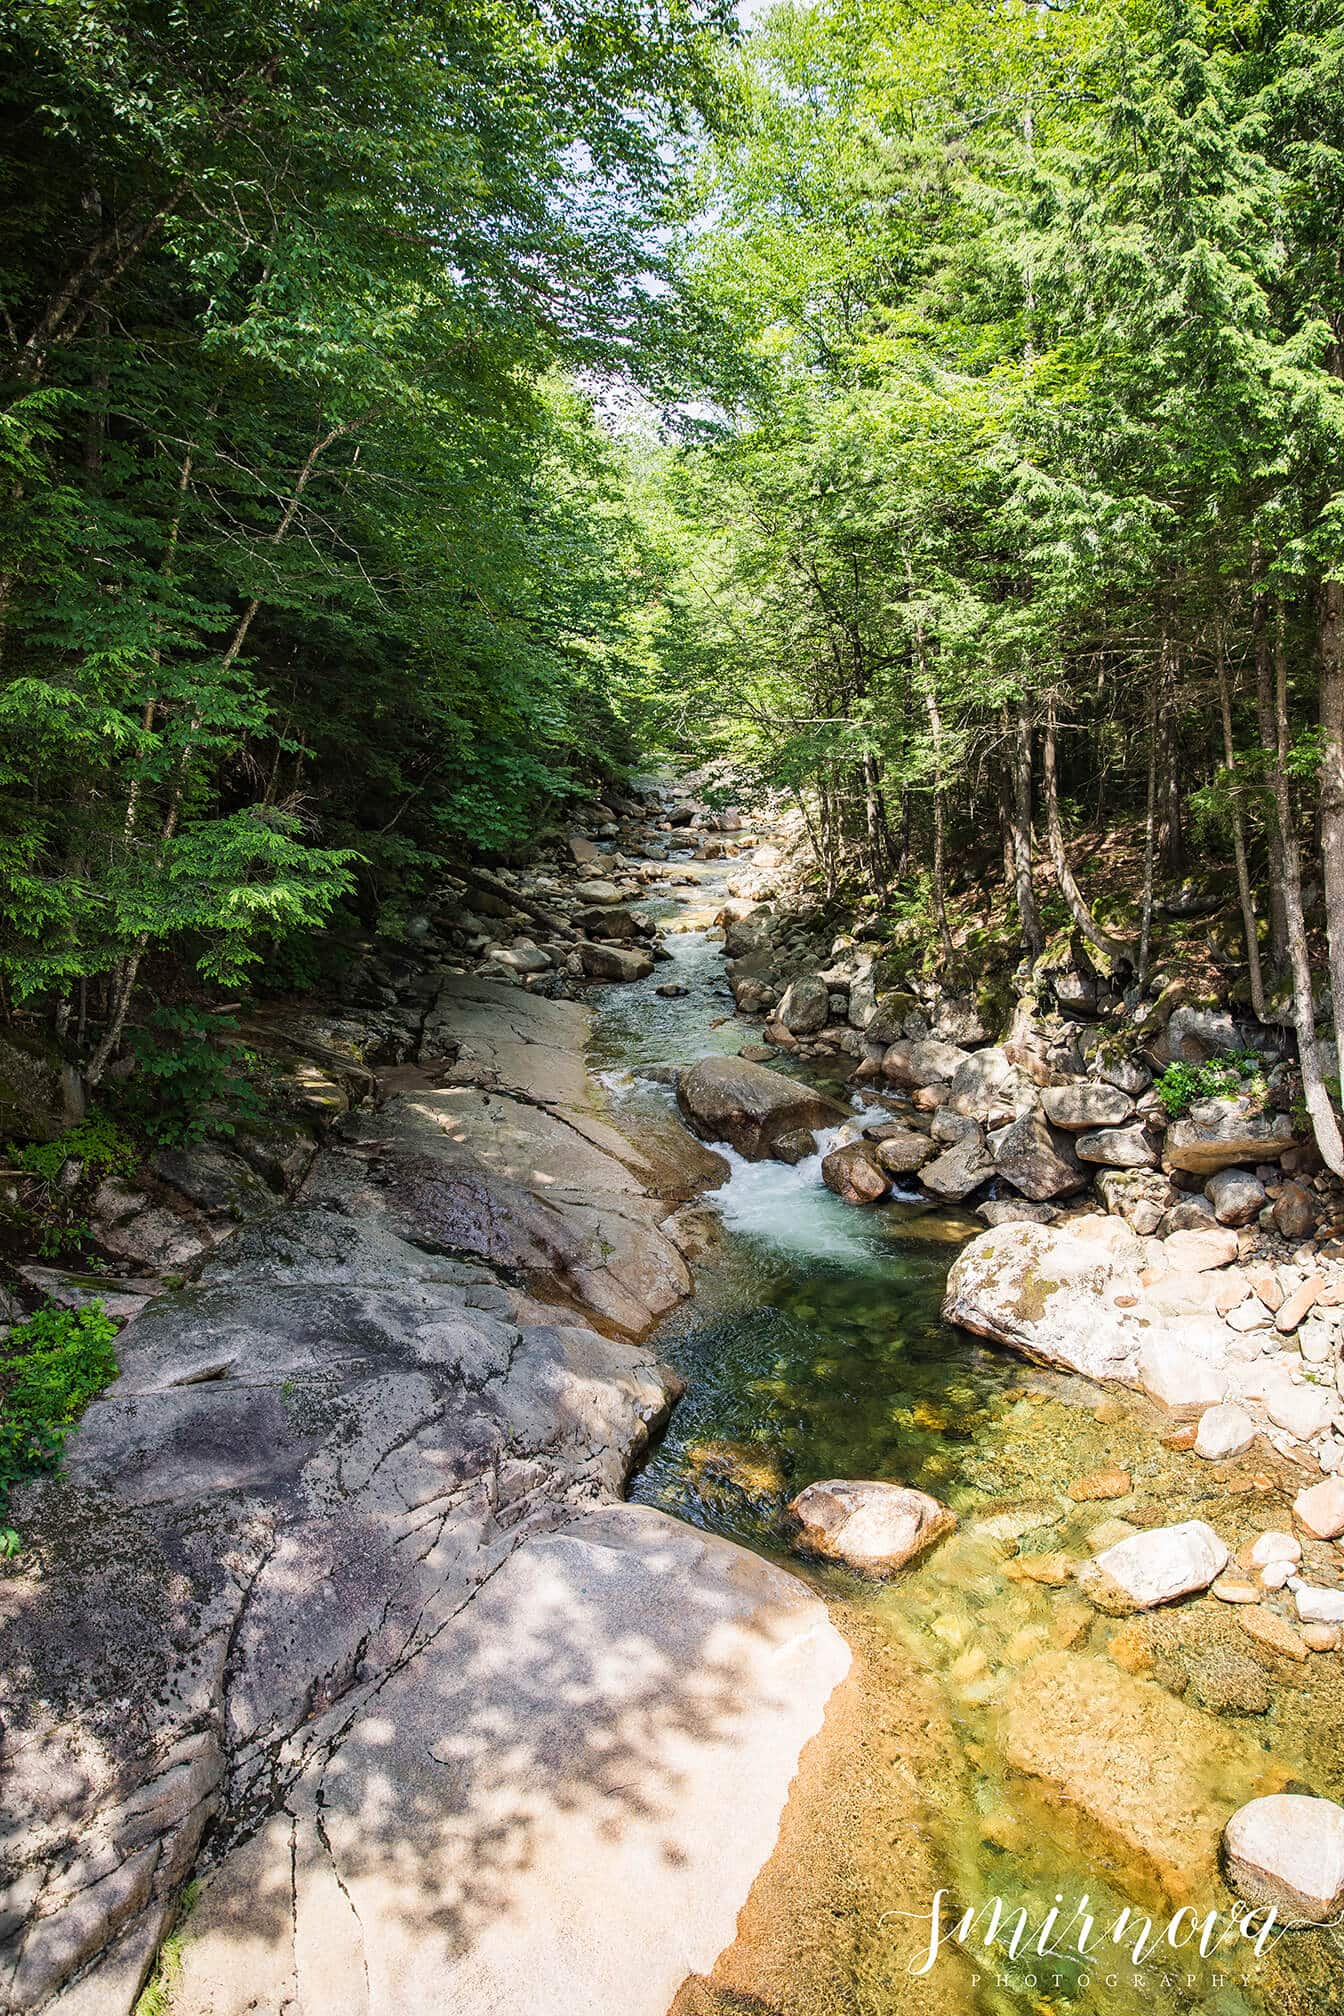 Franconia Notch Smirnova Photography by Alyssa